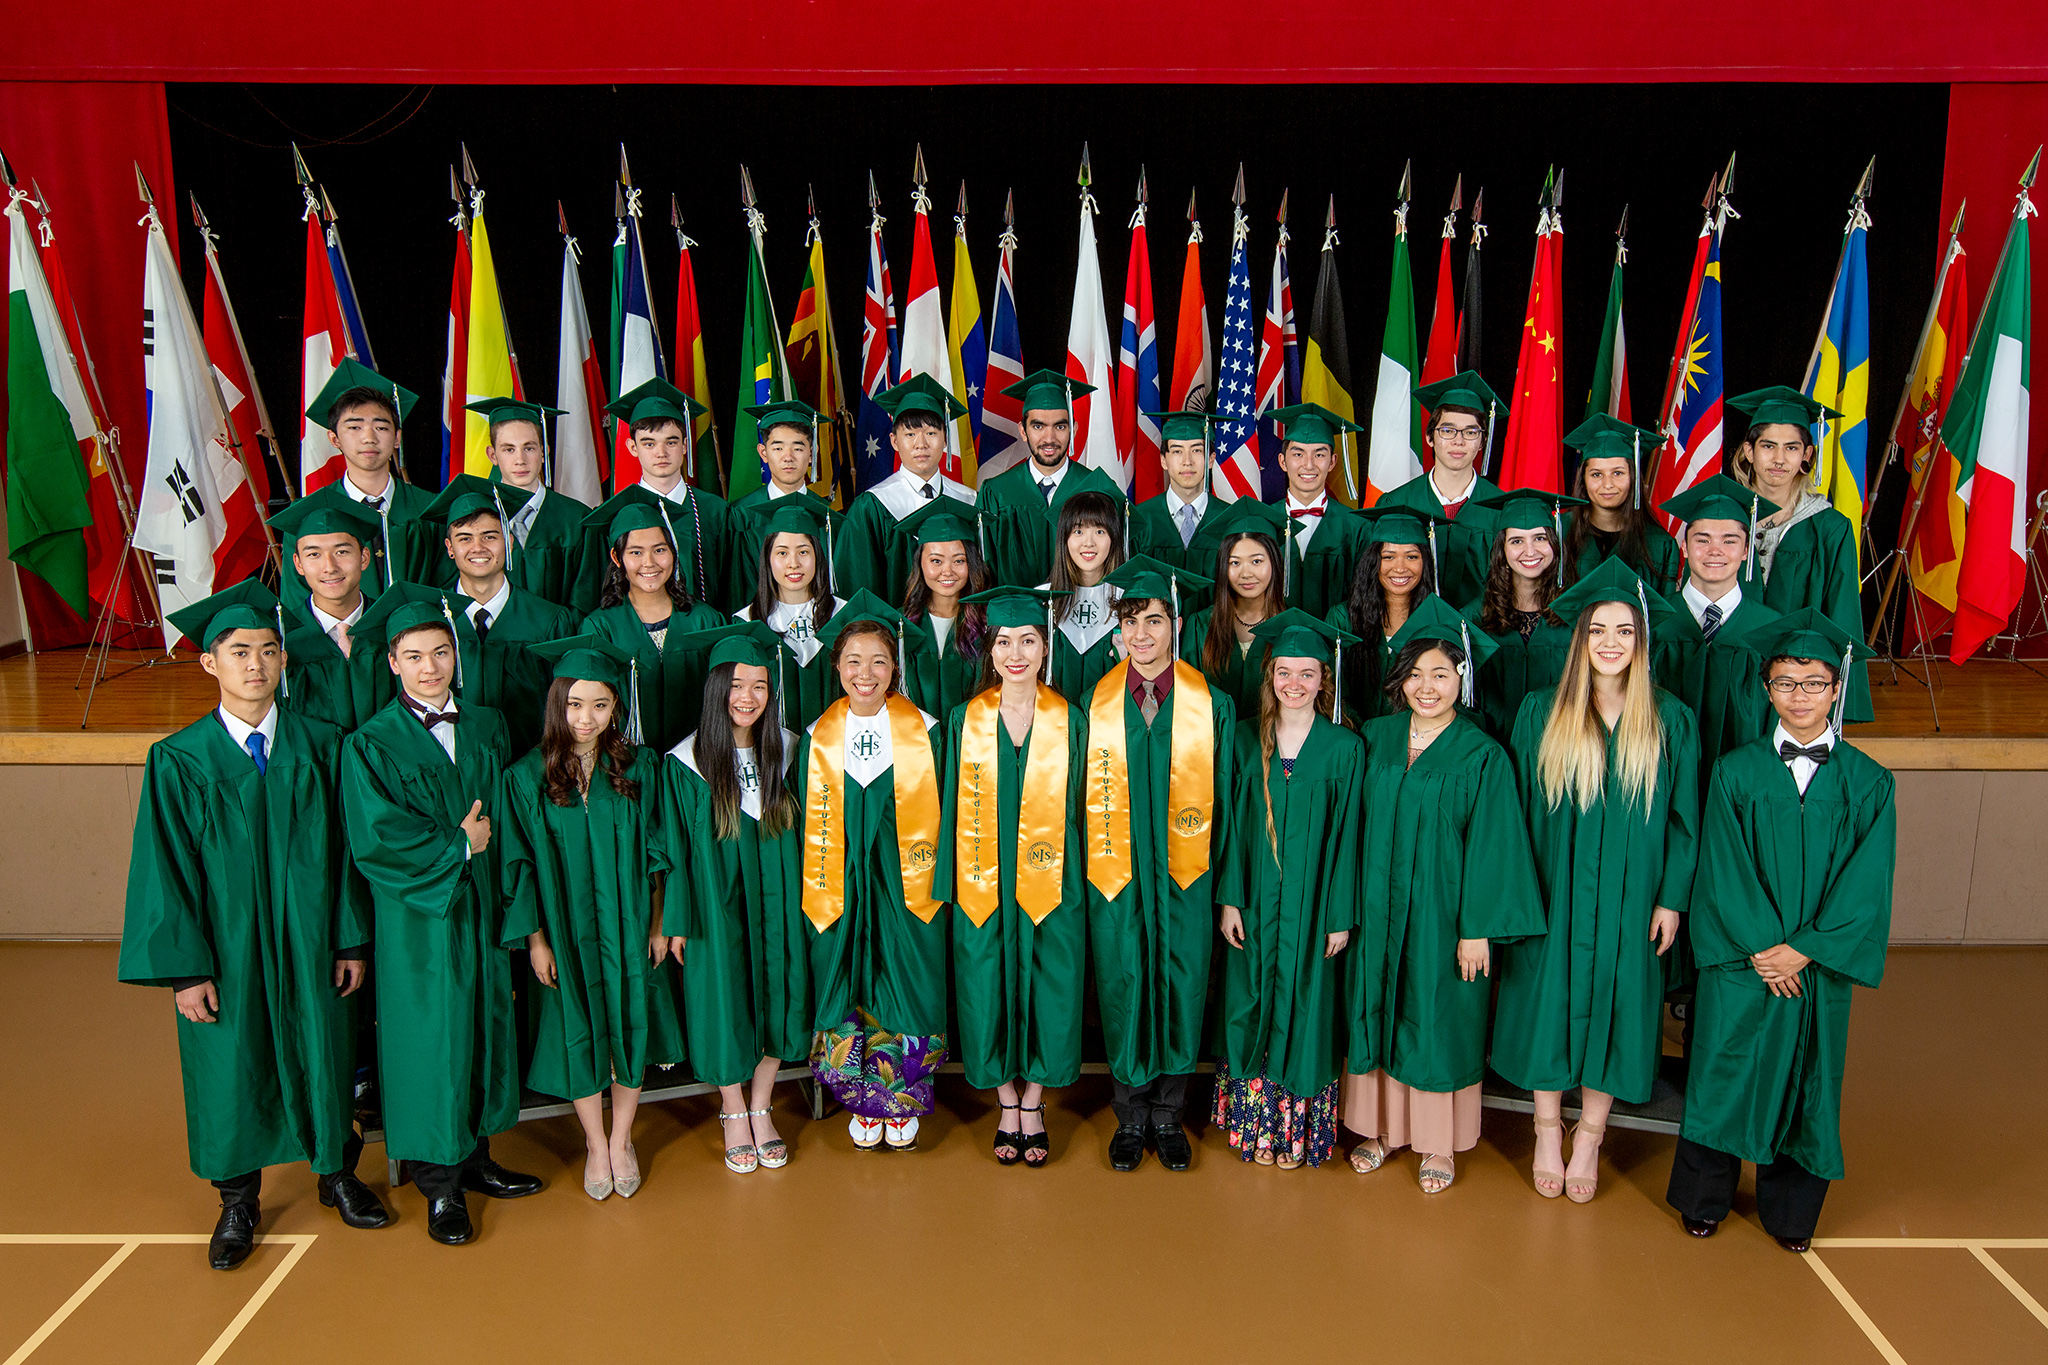 Boys and girls in green gowns smiling and posing for a photo